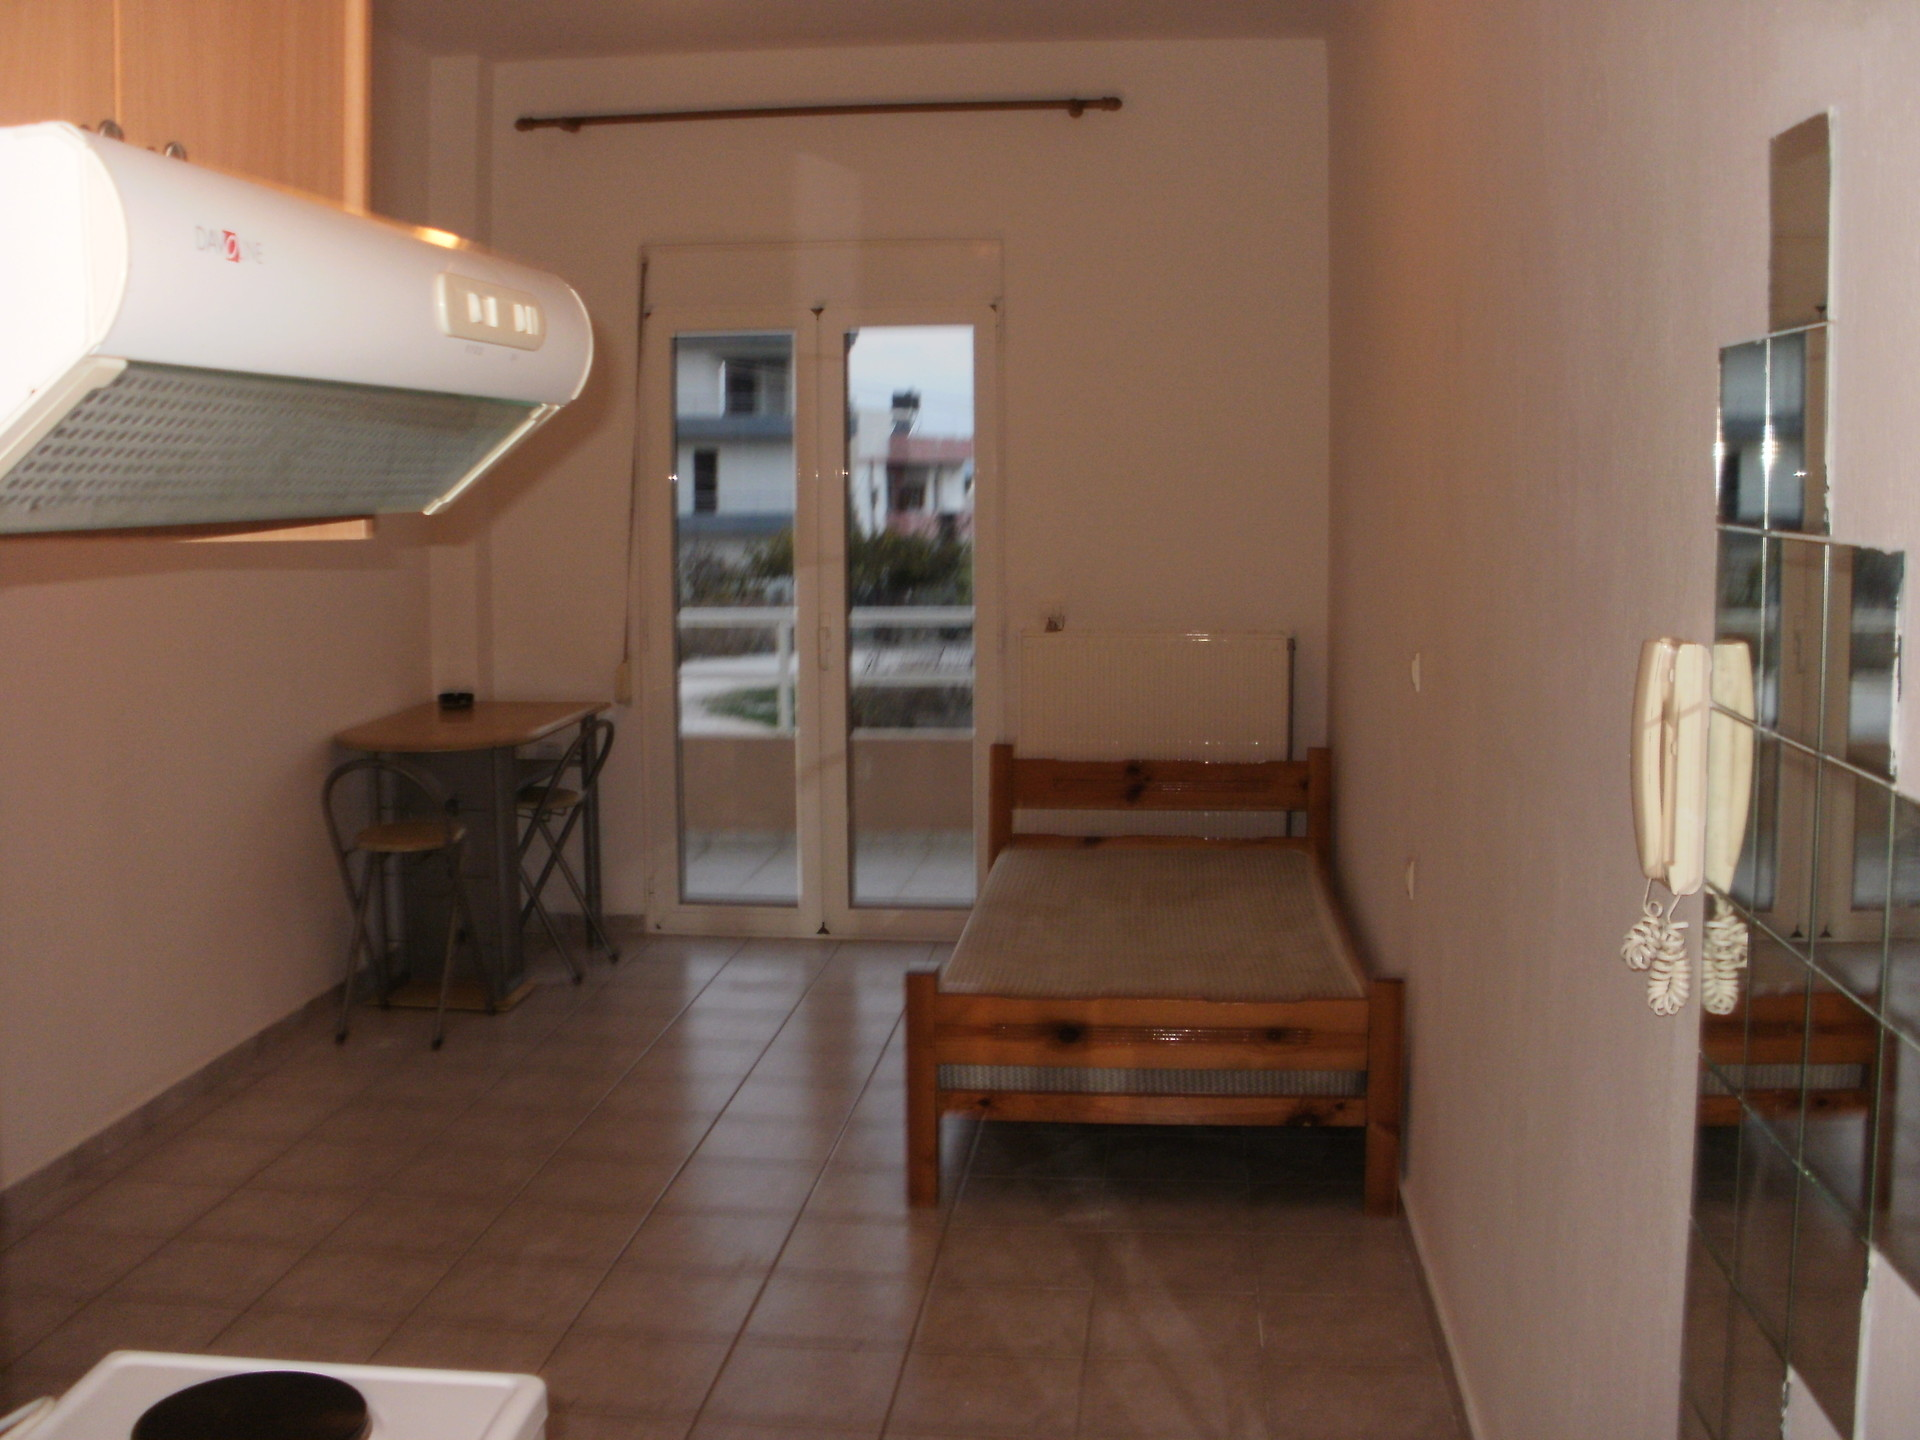 Furnished one room apartment near the university of crete for One room studio apartment